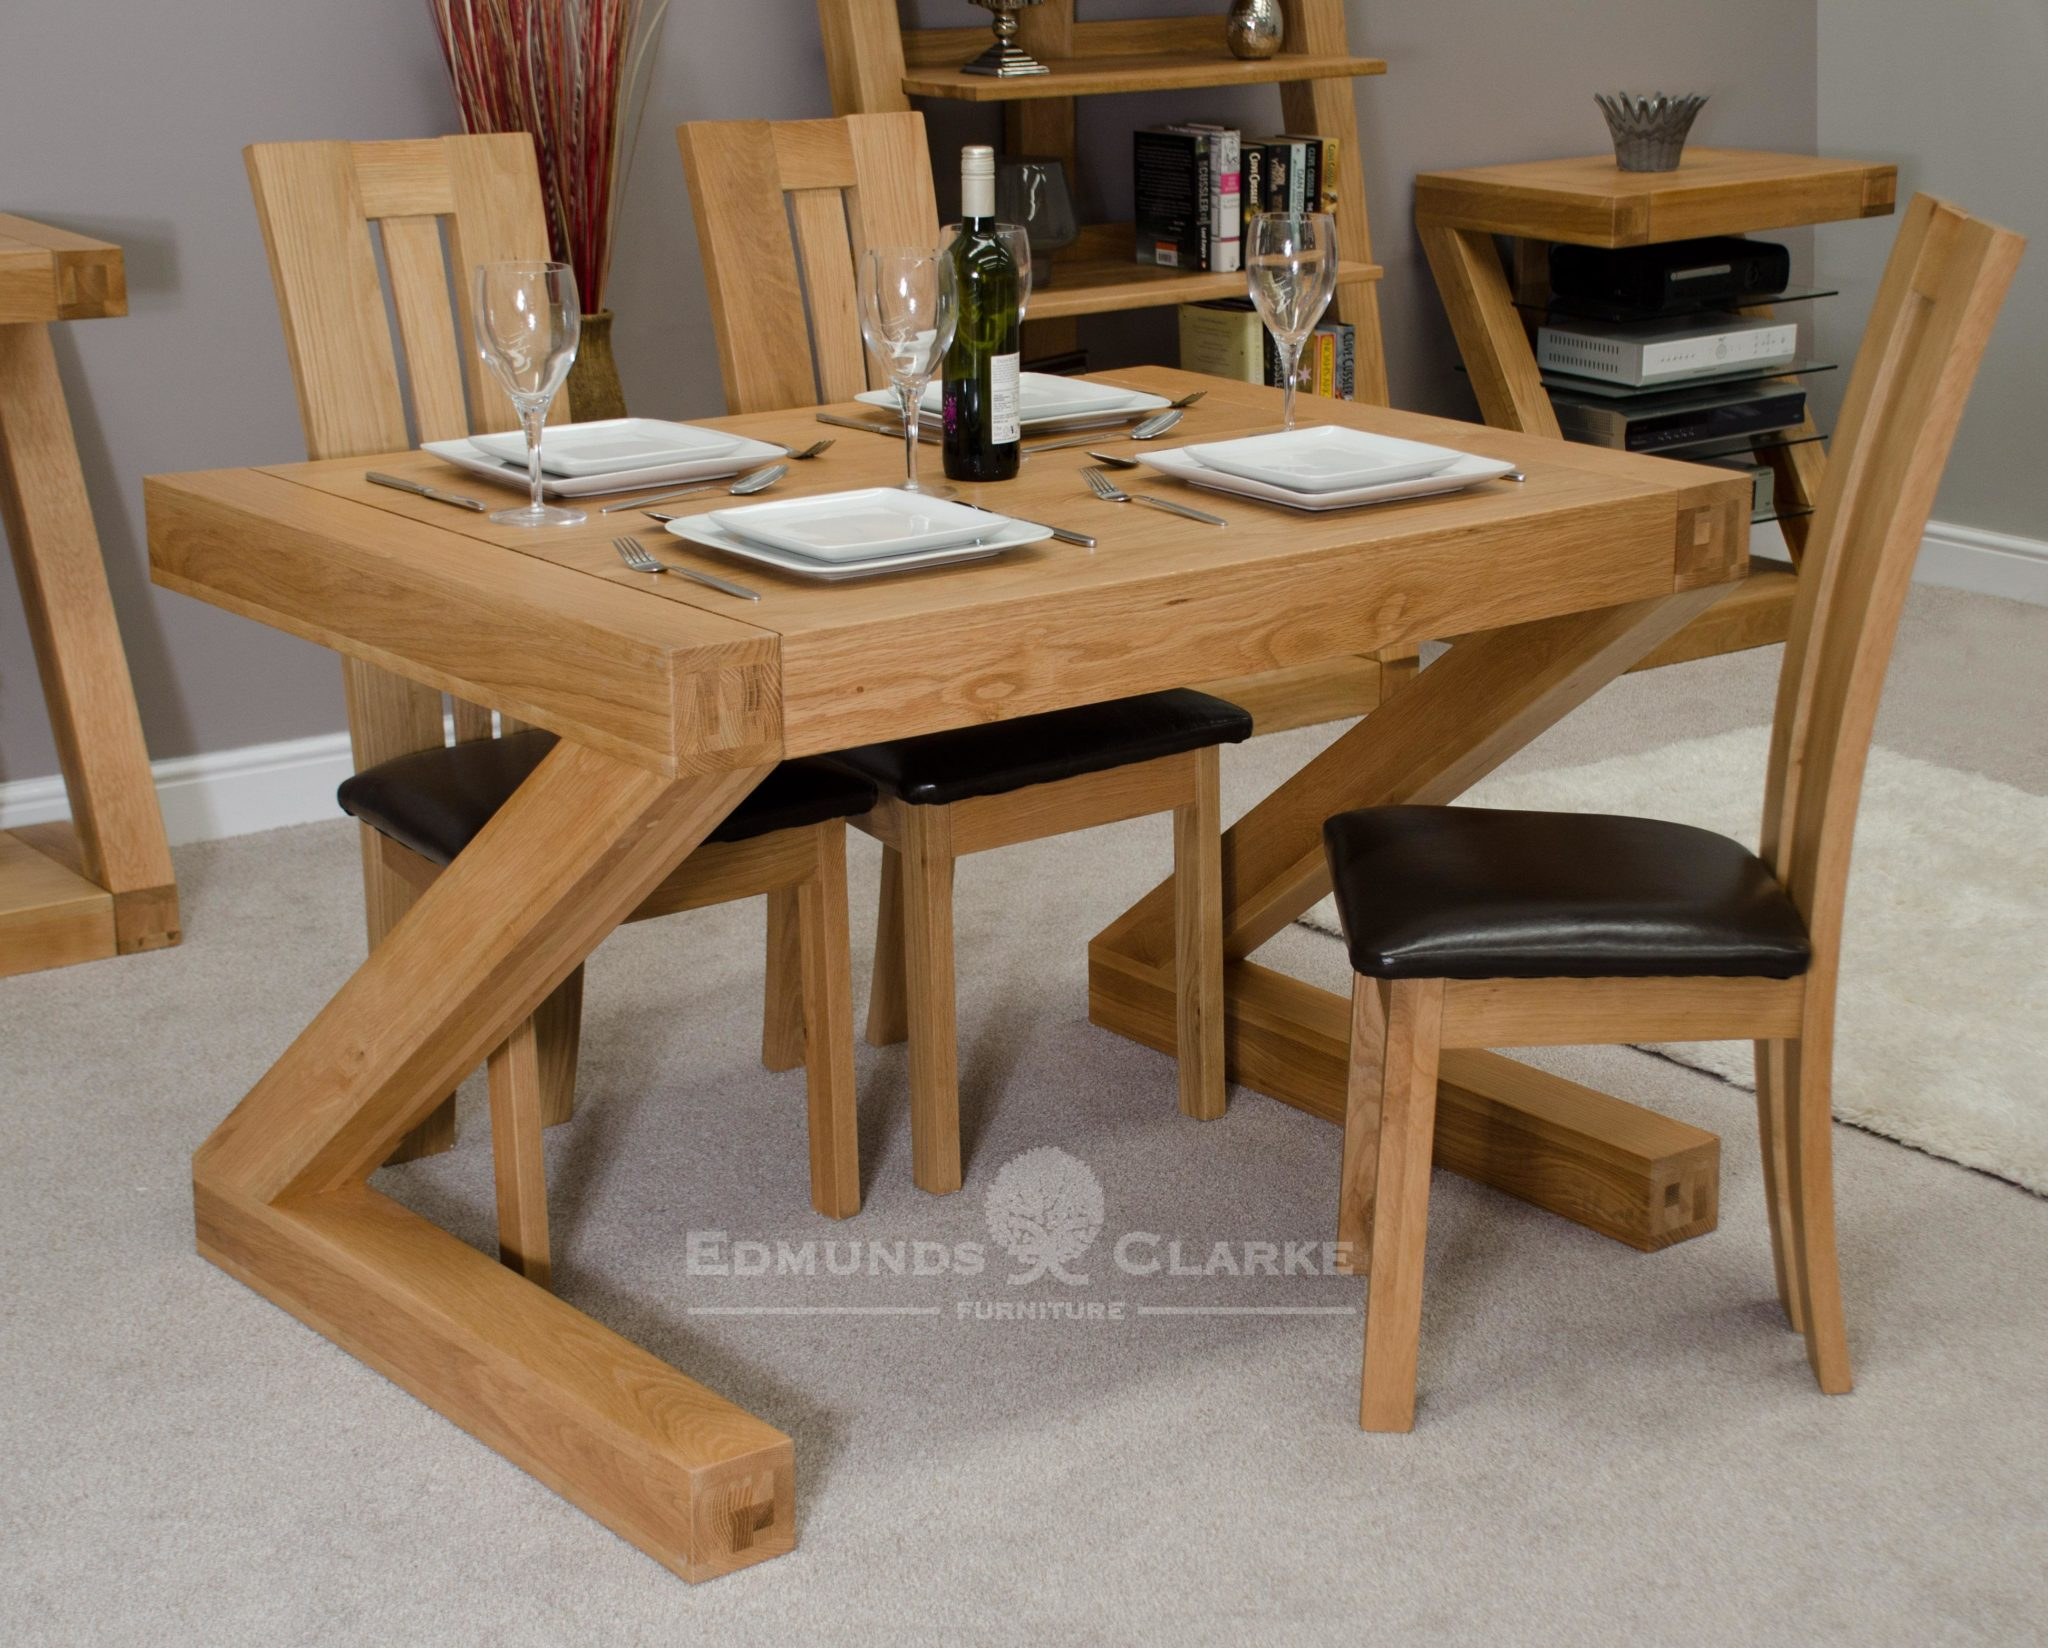 Z shape solid oak designer small dining table Z4x3T